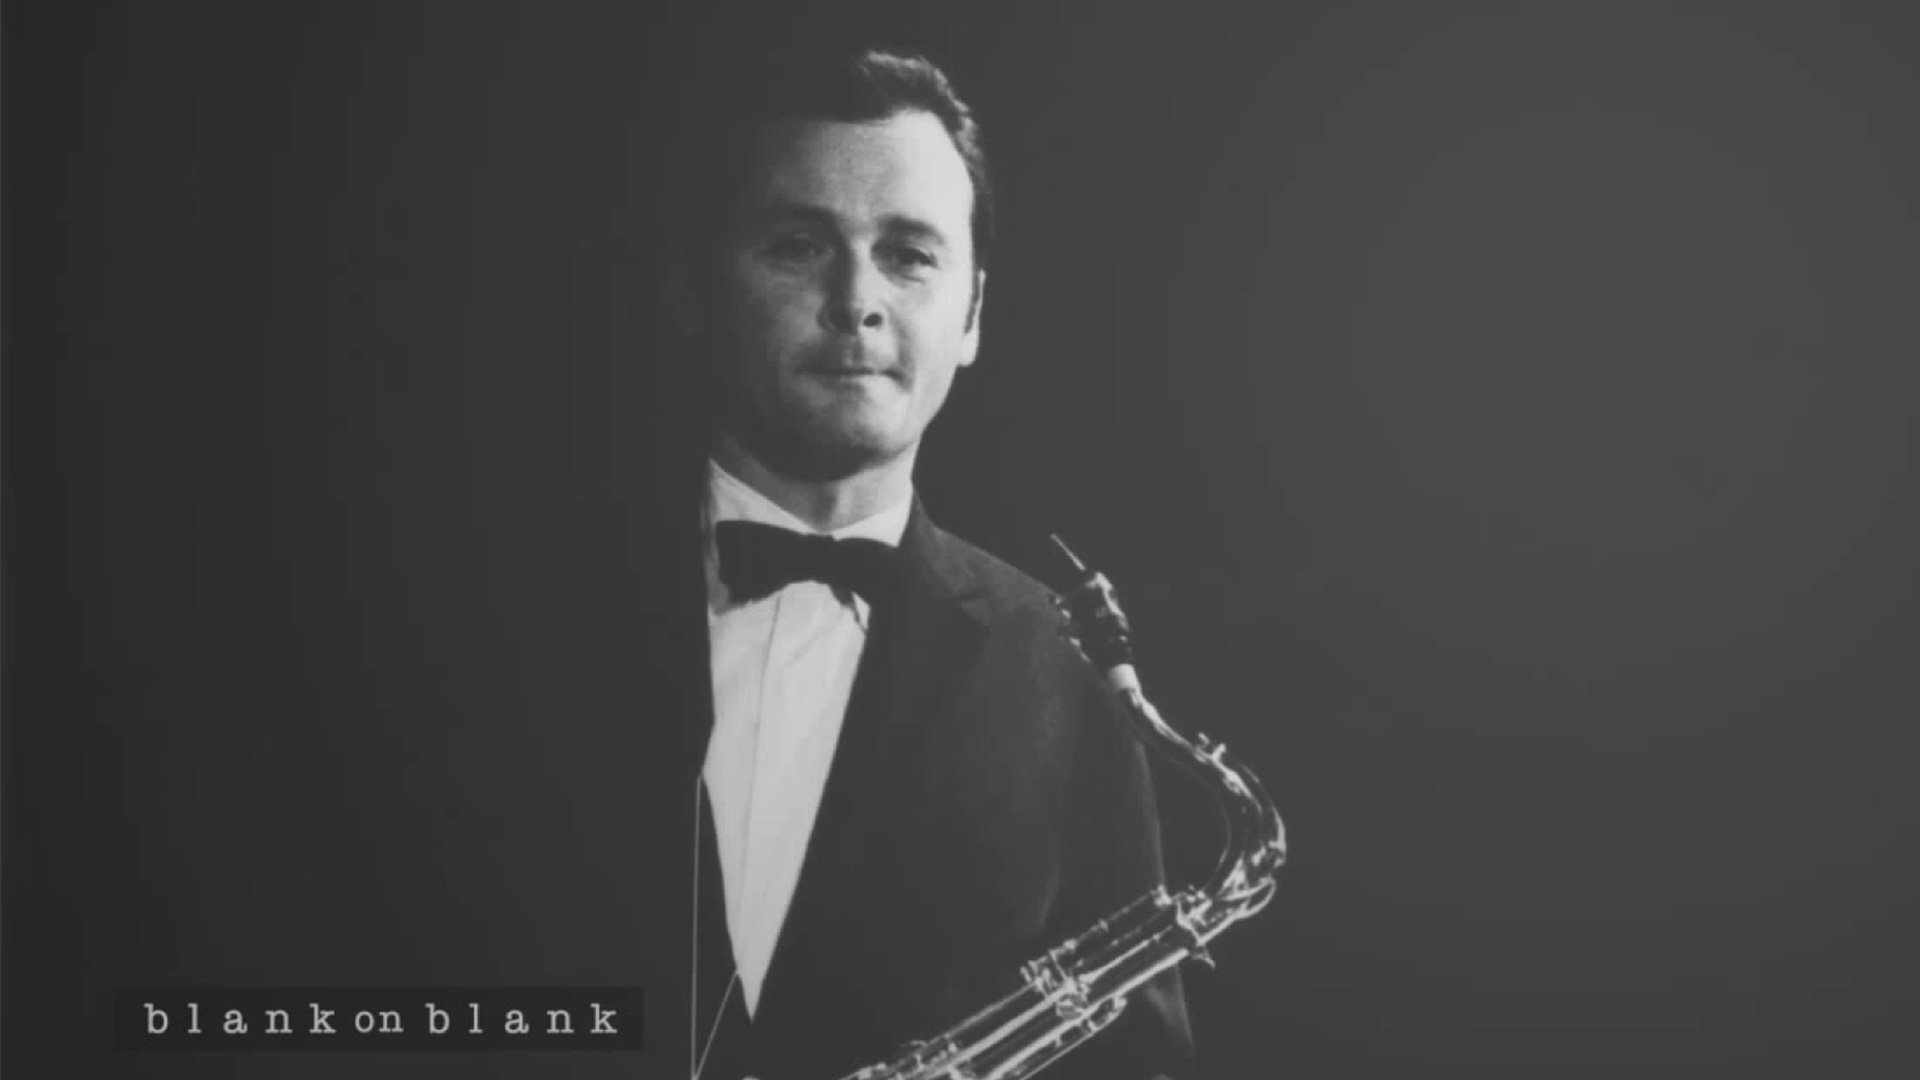 stan-getz-blank-on-blank-interview-youtube-video